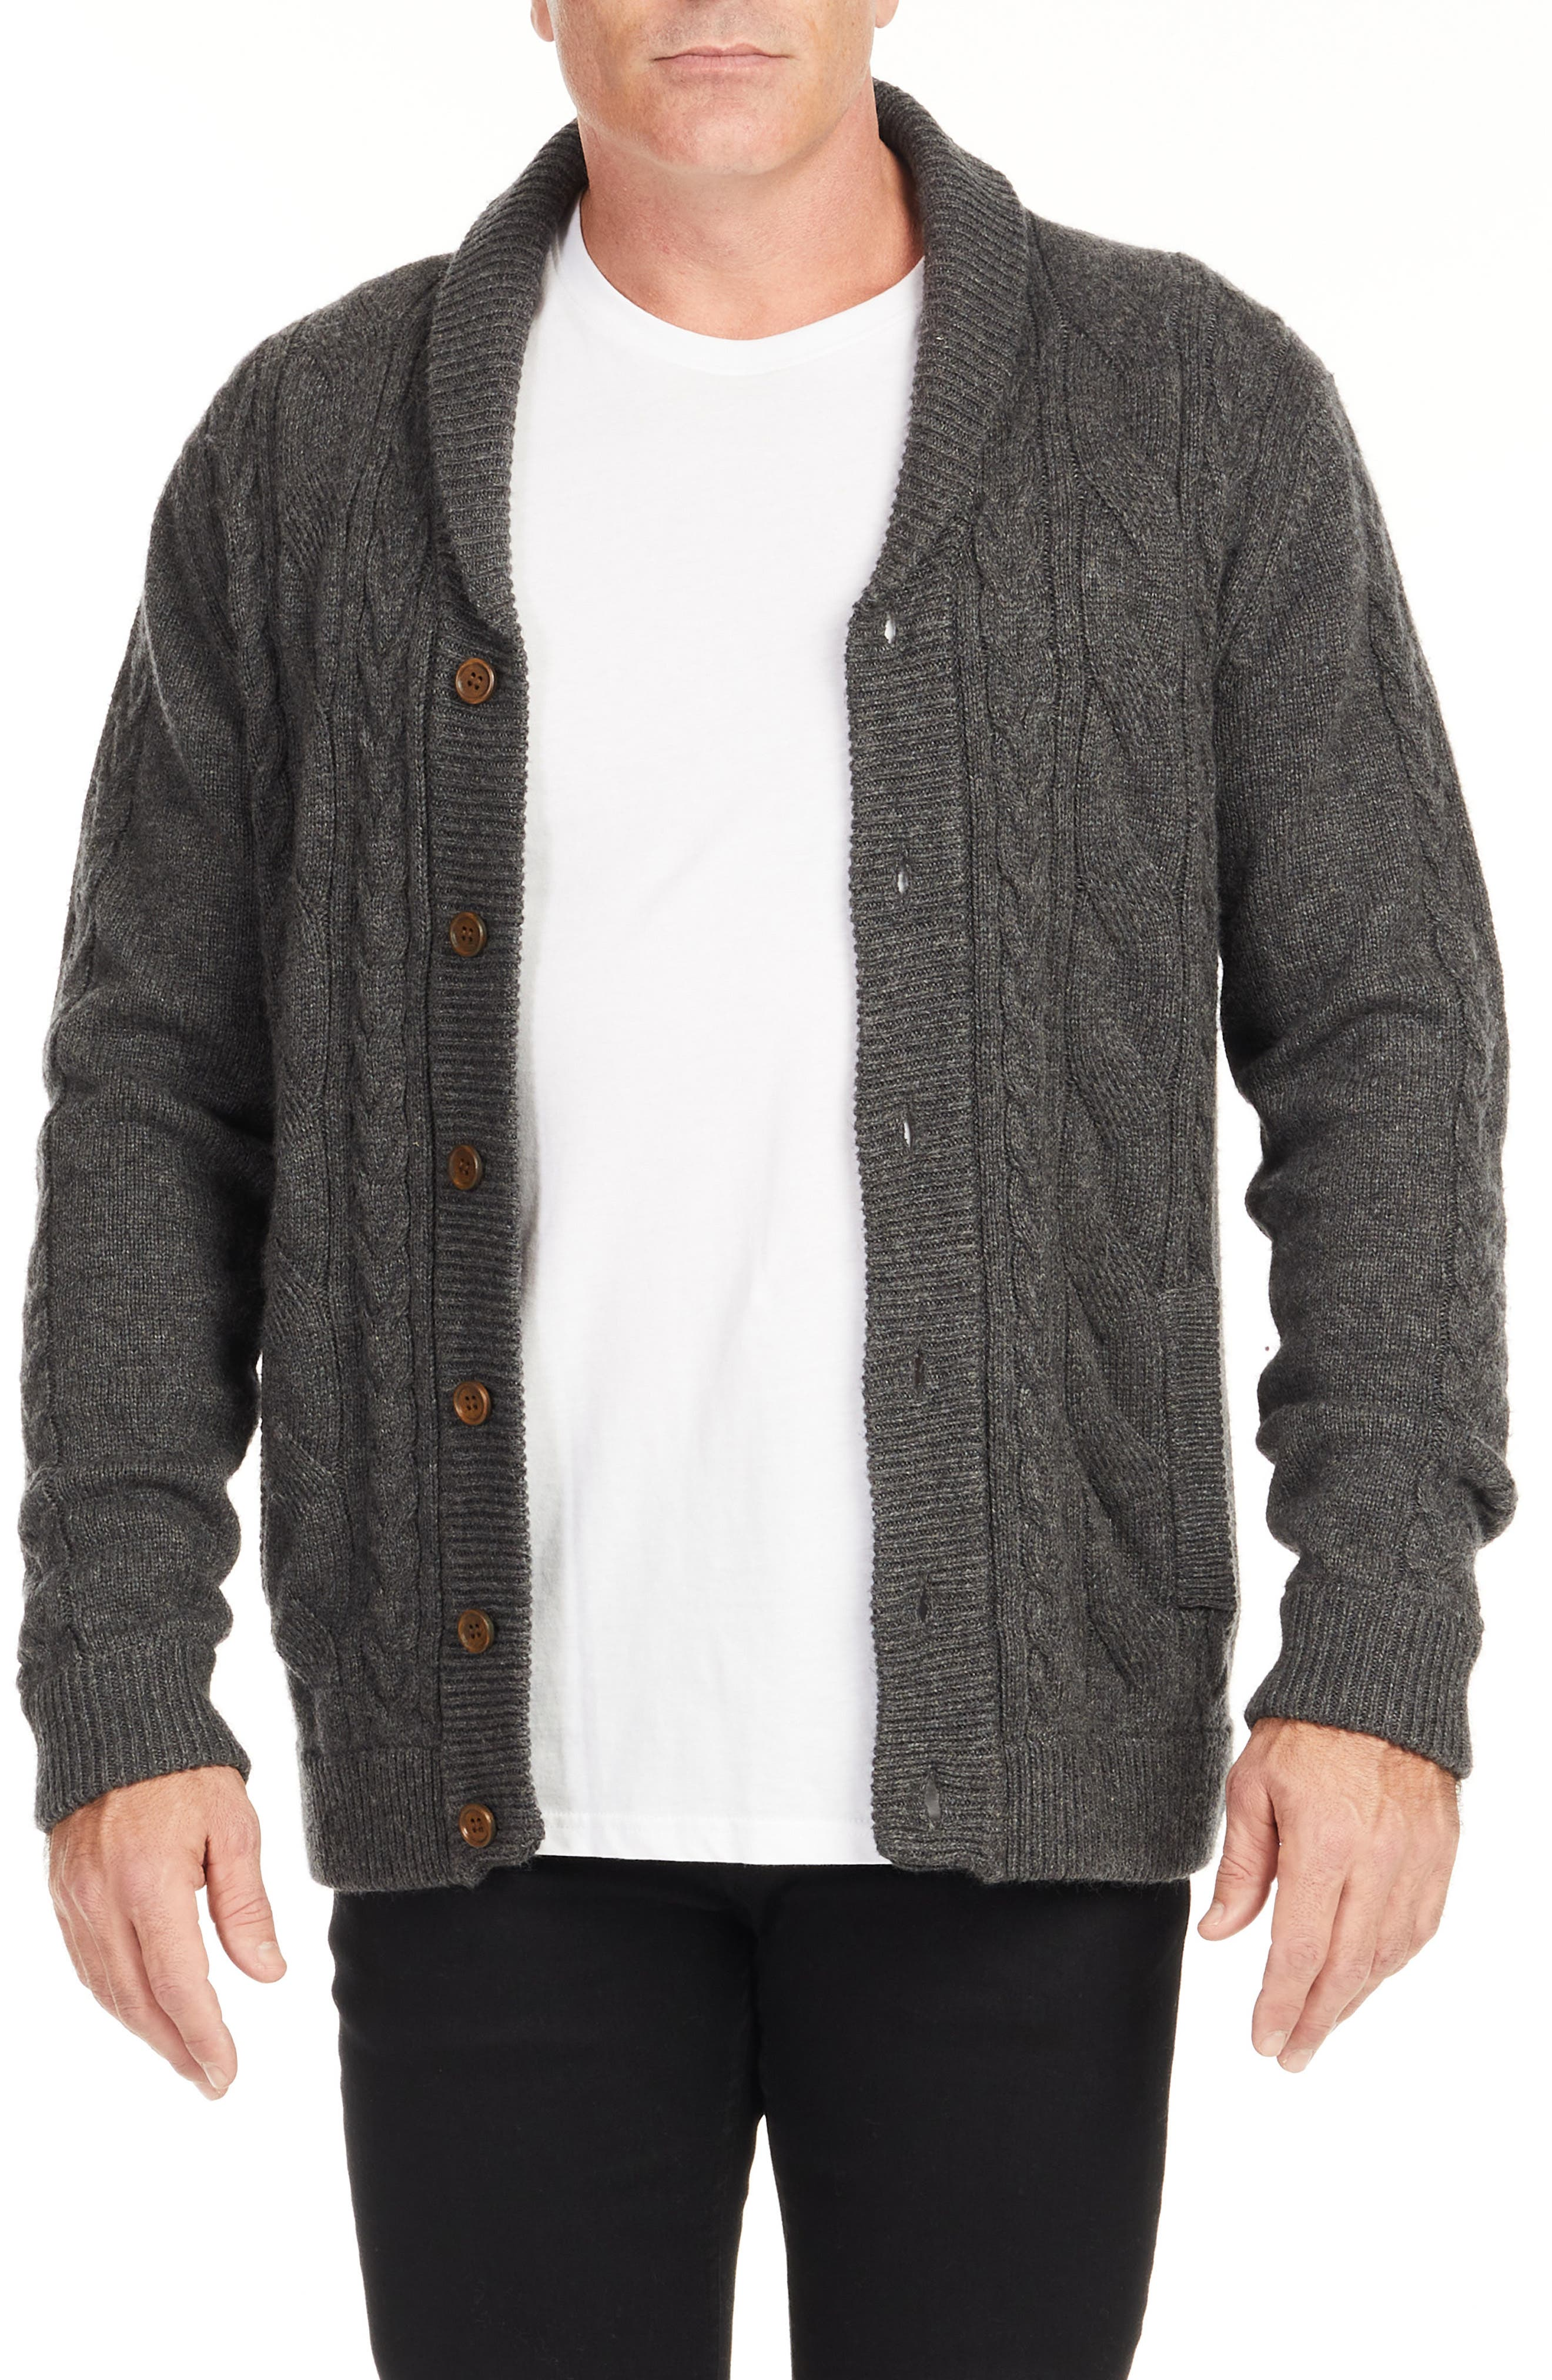 Whendon Cable Knit Cardigan